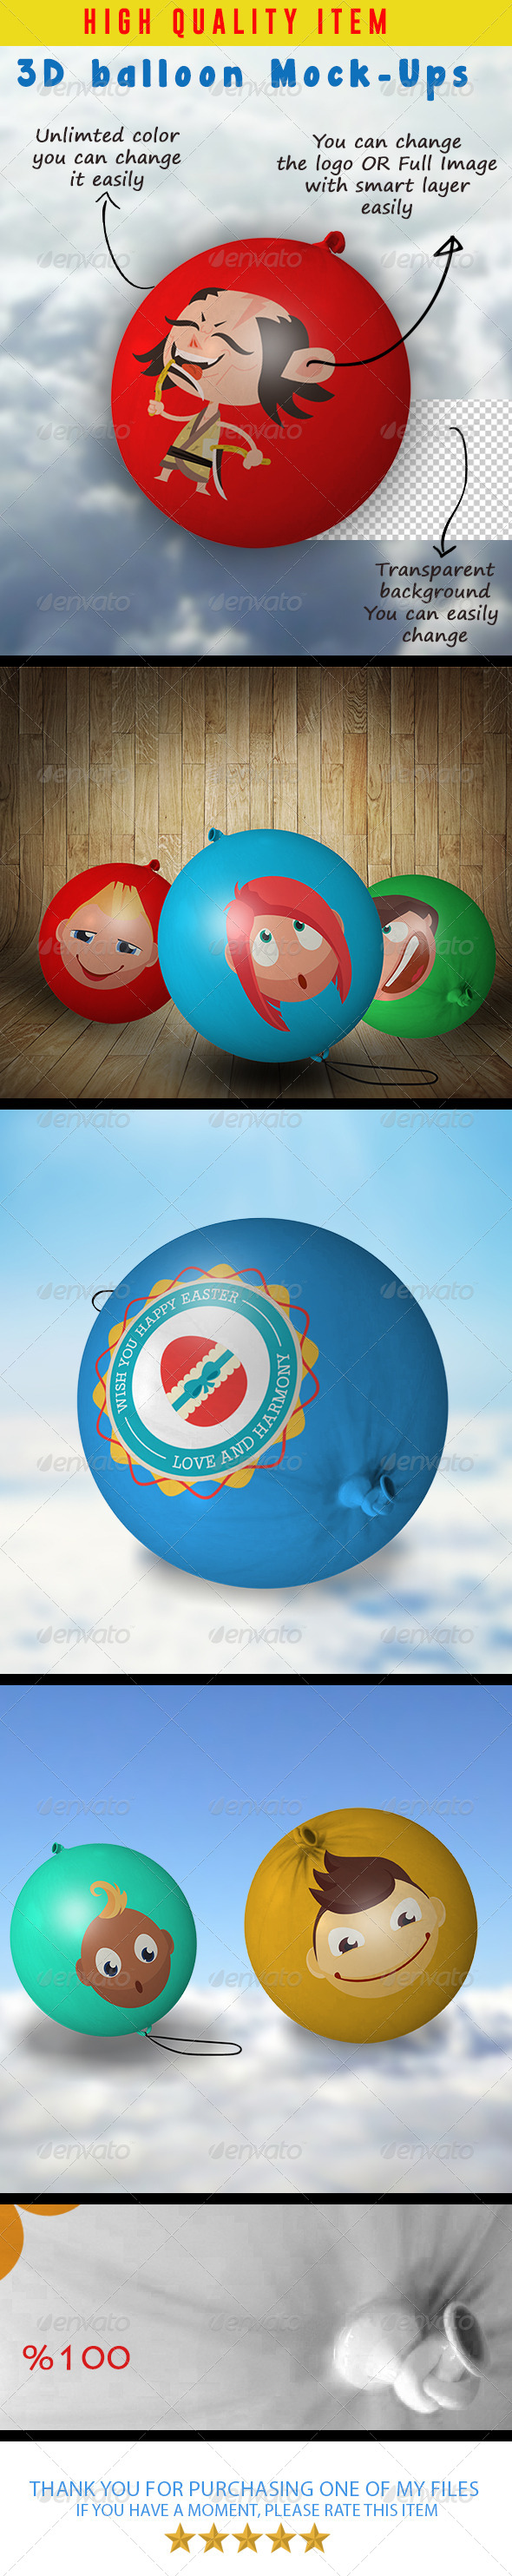 GraphicRiver 3D balloon Mock-Ups 8005775